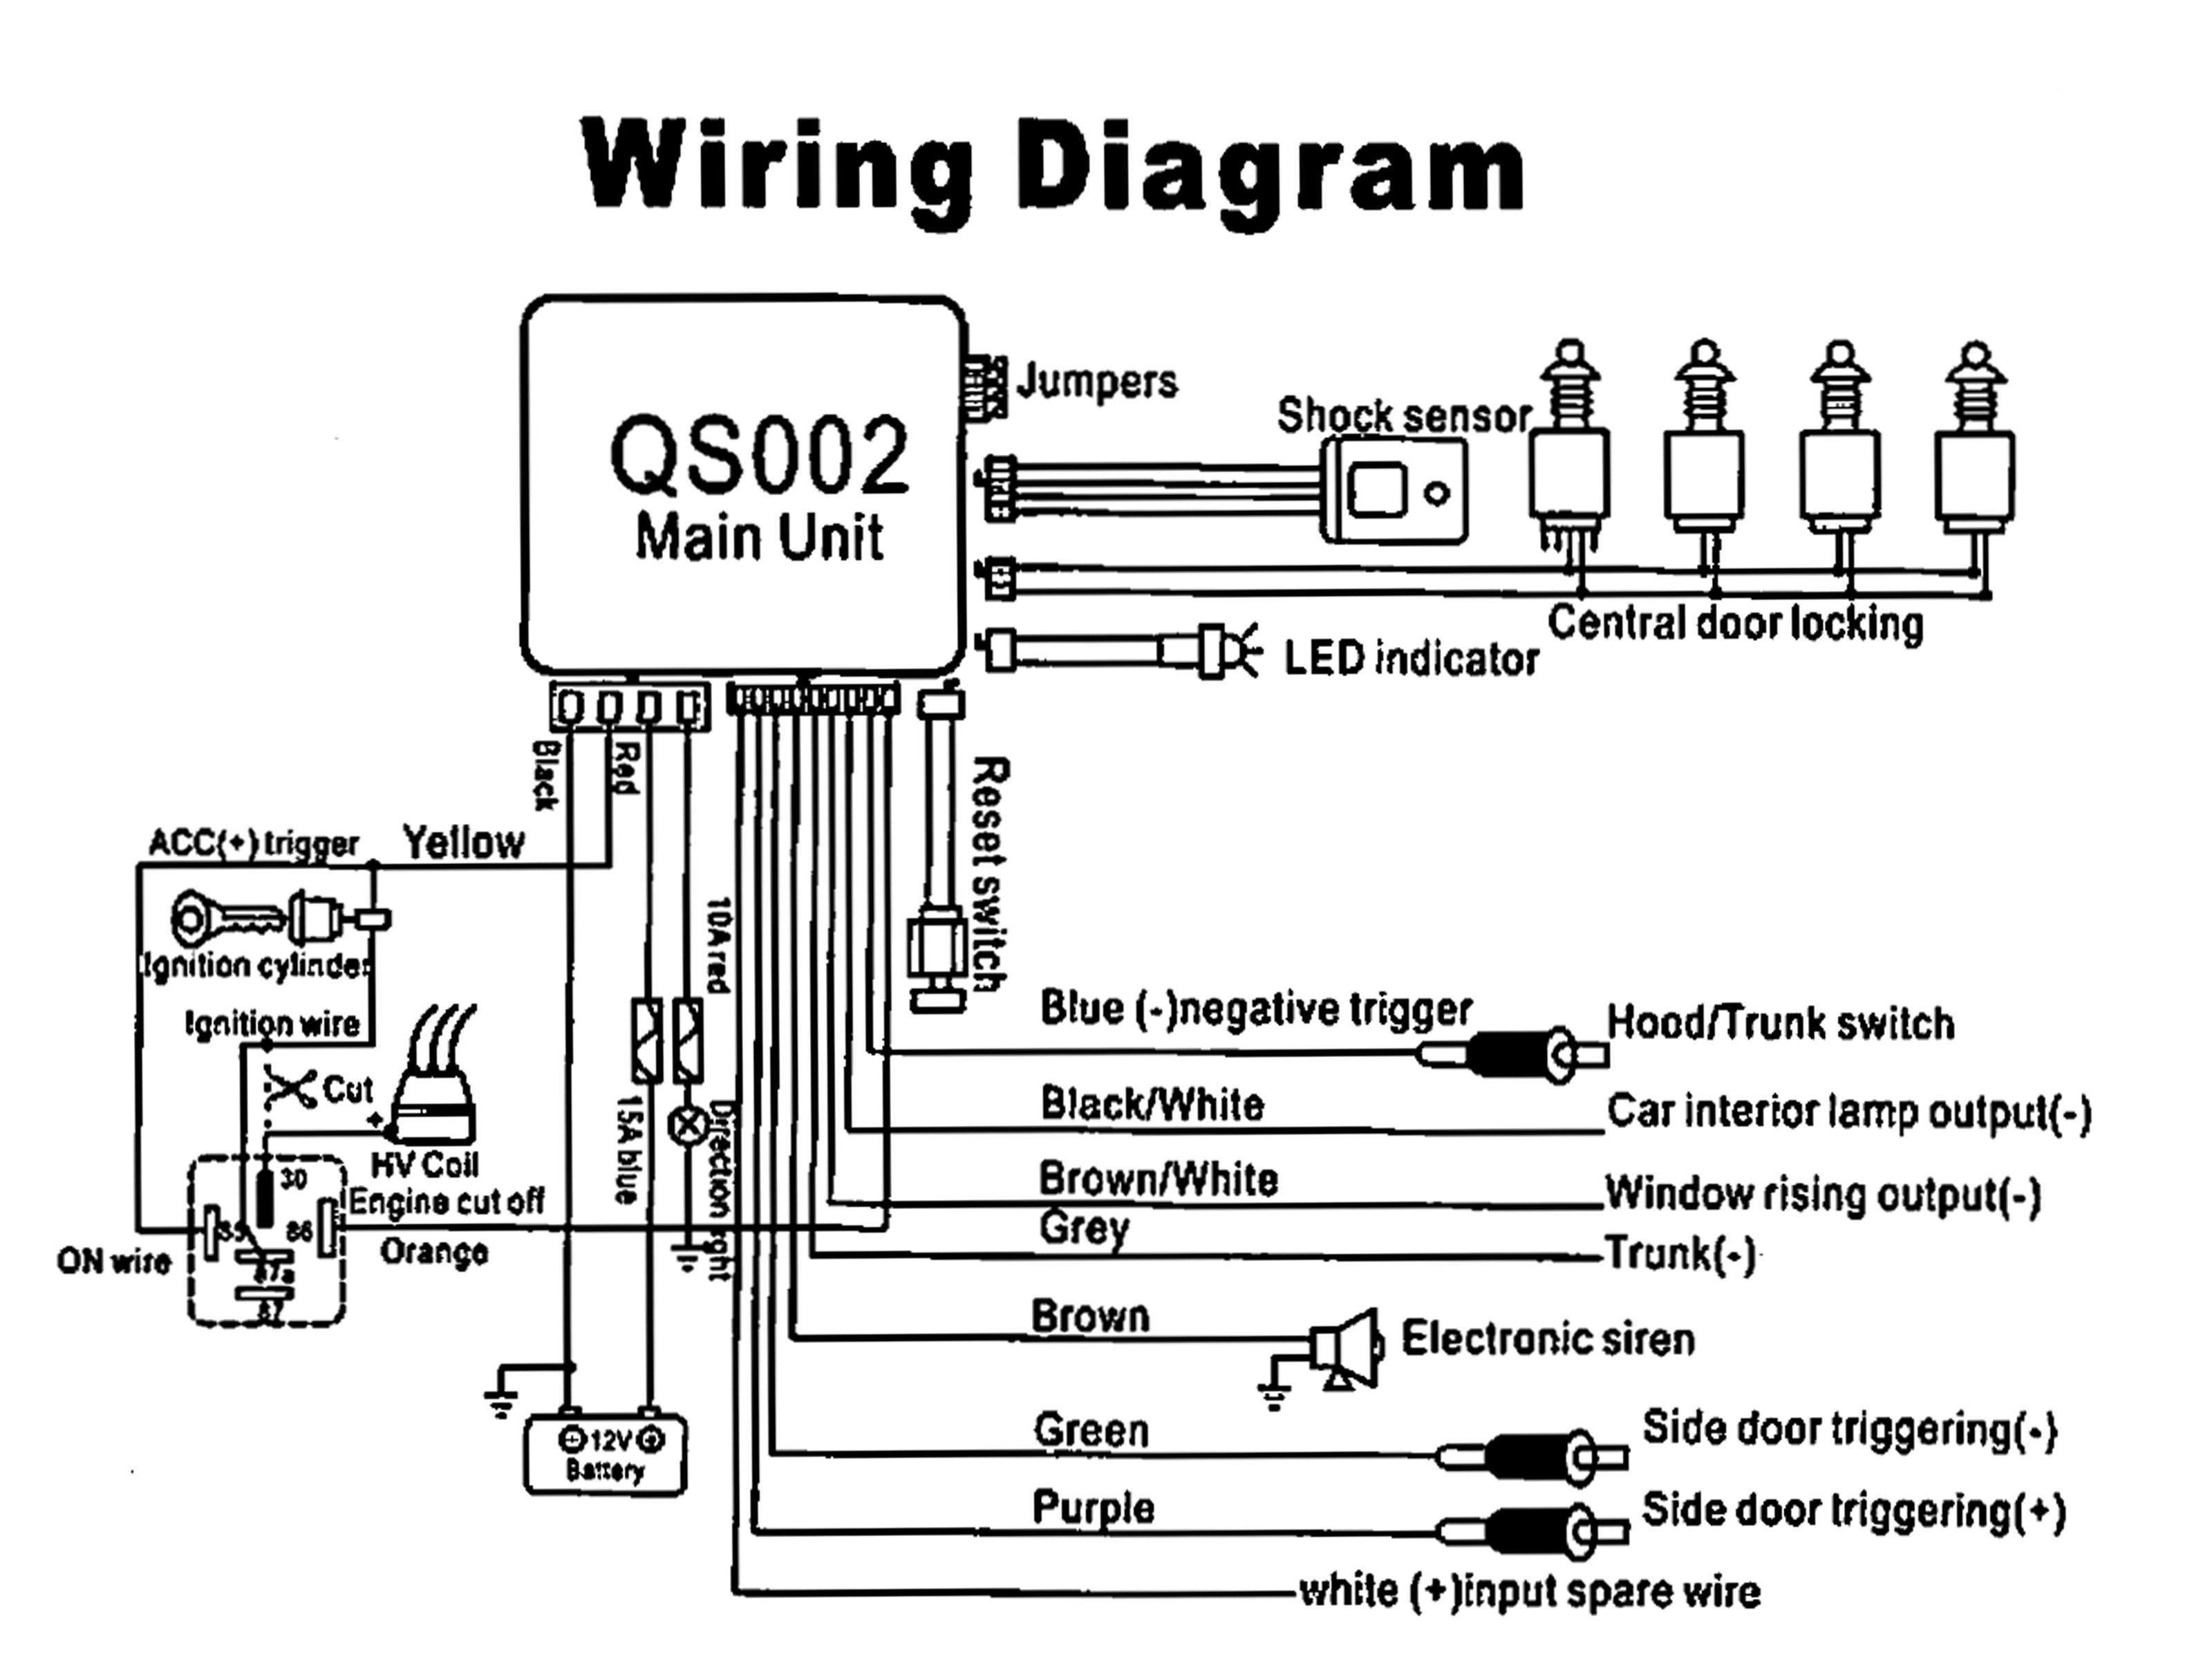 16 Stunning Vehicle Wiring Diagrams Design